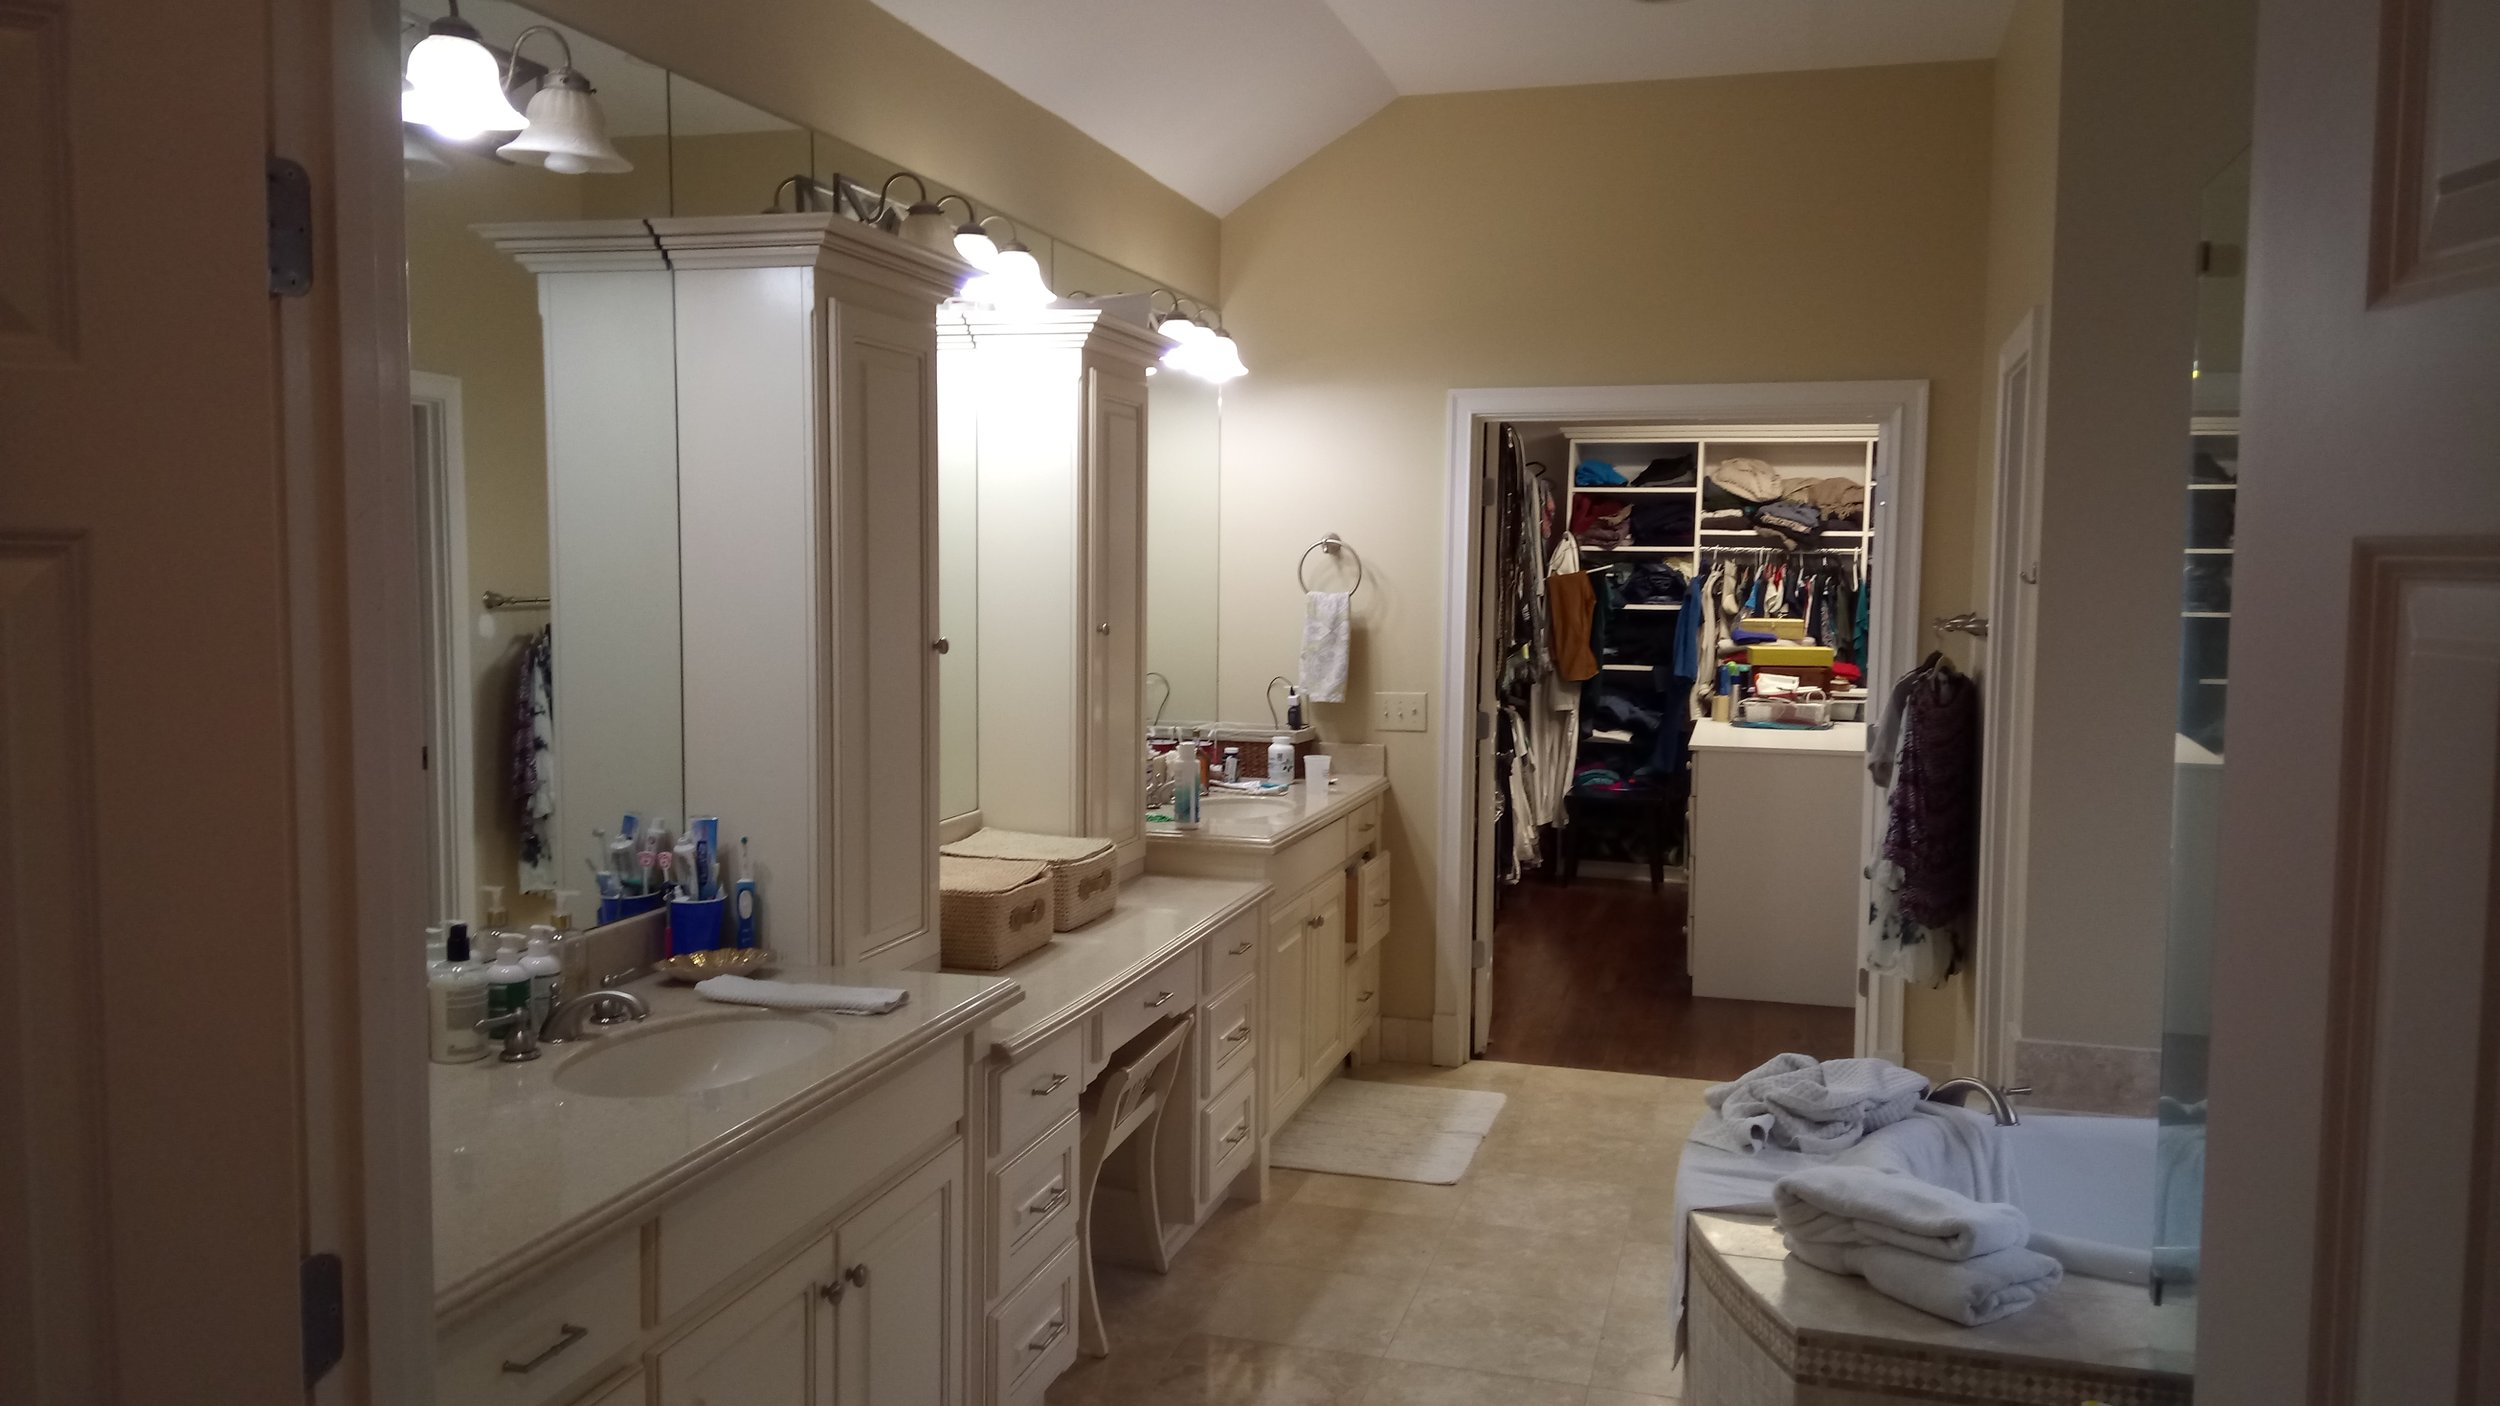 The previous layout had a direct line of sight from the bed, through the bathroom, to a poorly organized closet.